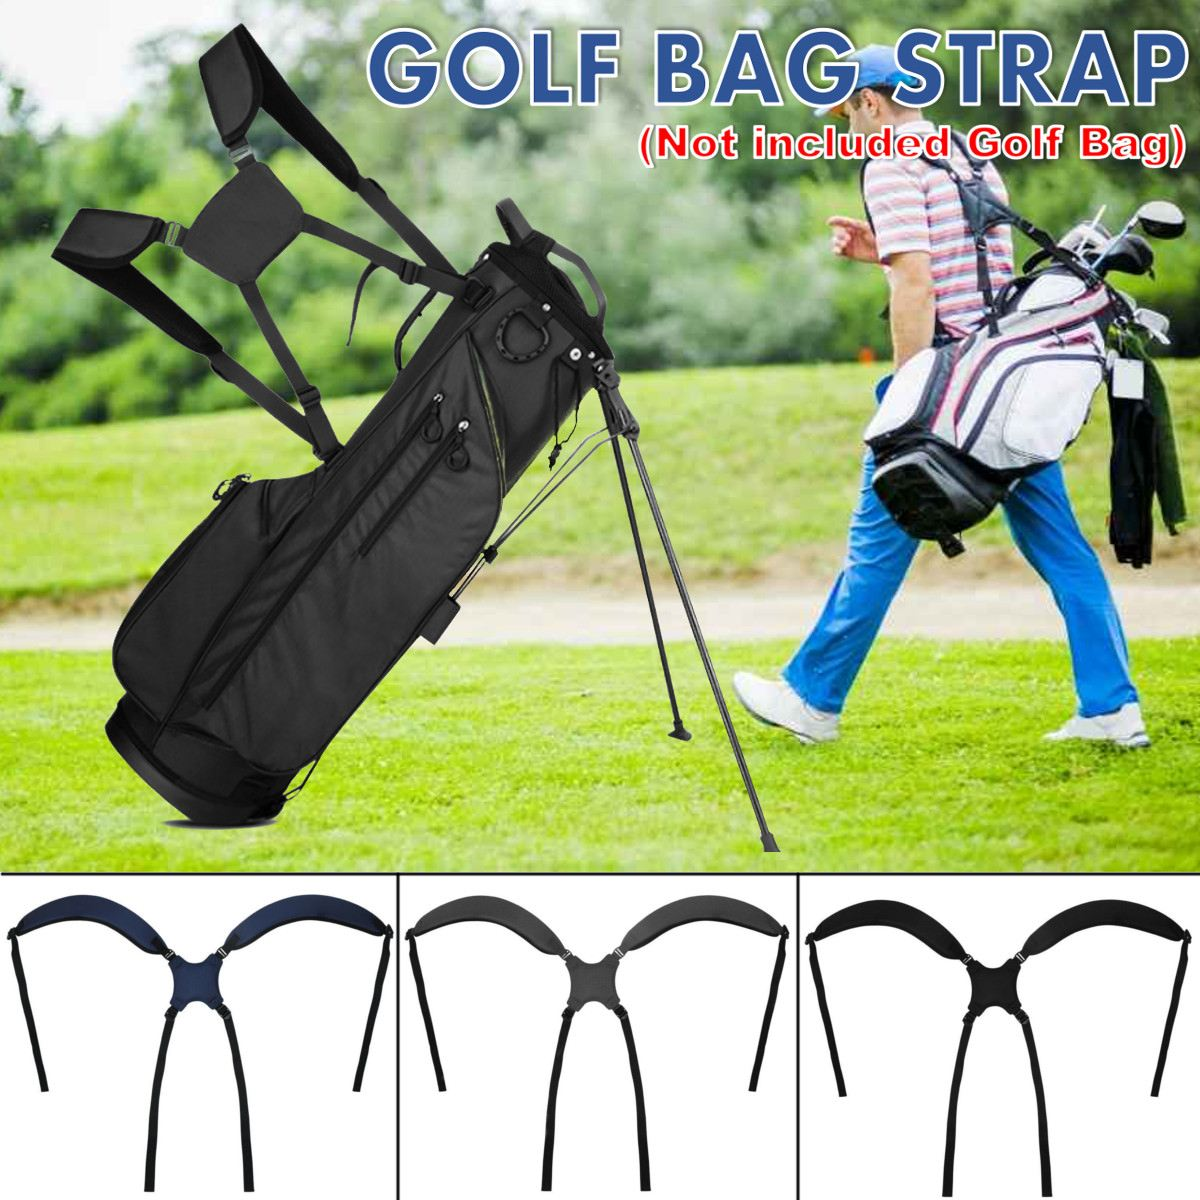 Portable Golf Shoulder Strap PaddedFor Carry Bag Foldable Easy Multi Colors Ajustable Lightweight Replacement Accessories 1